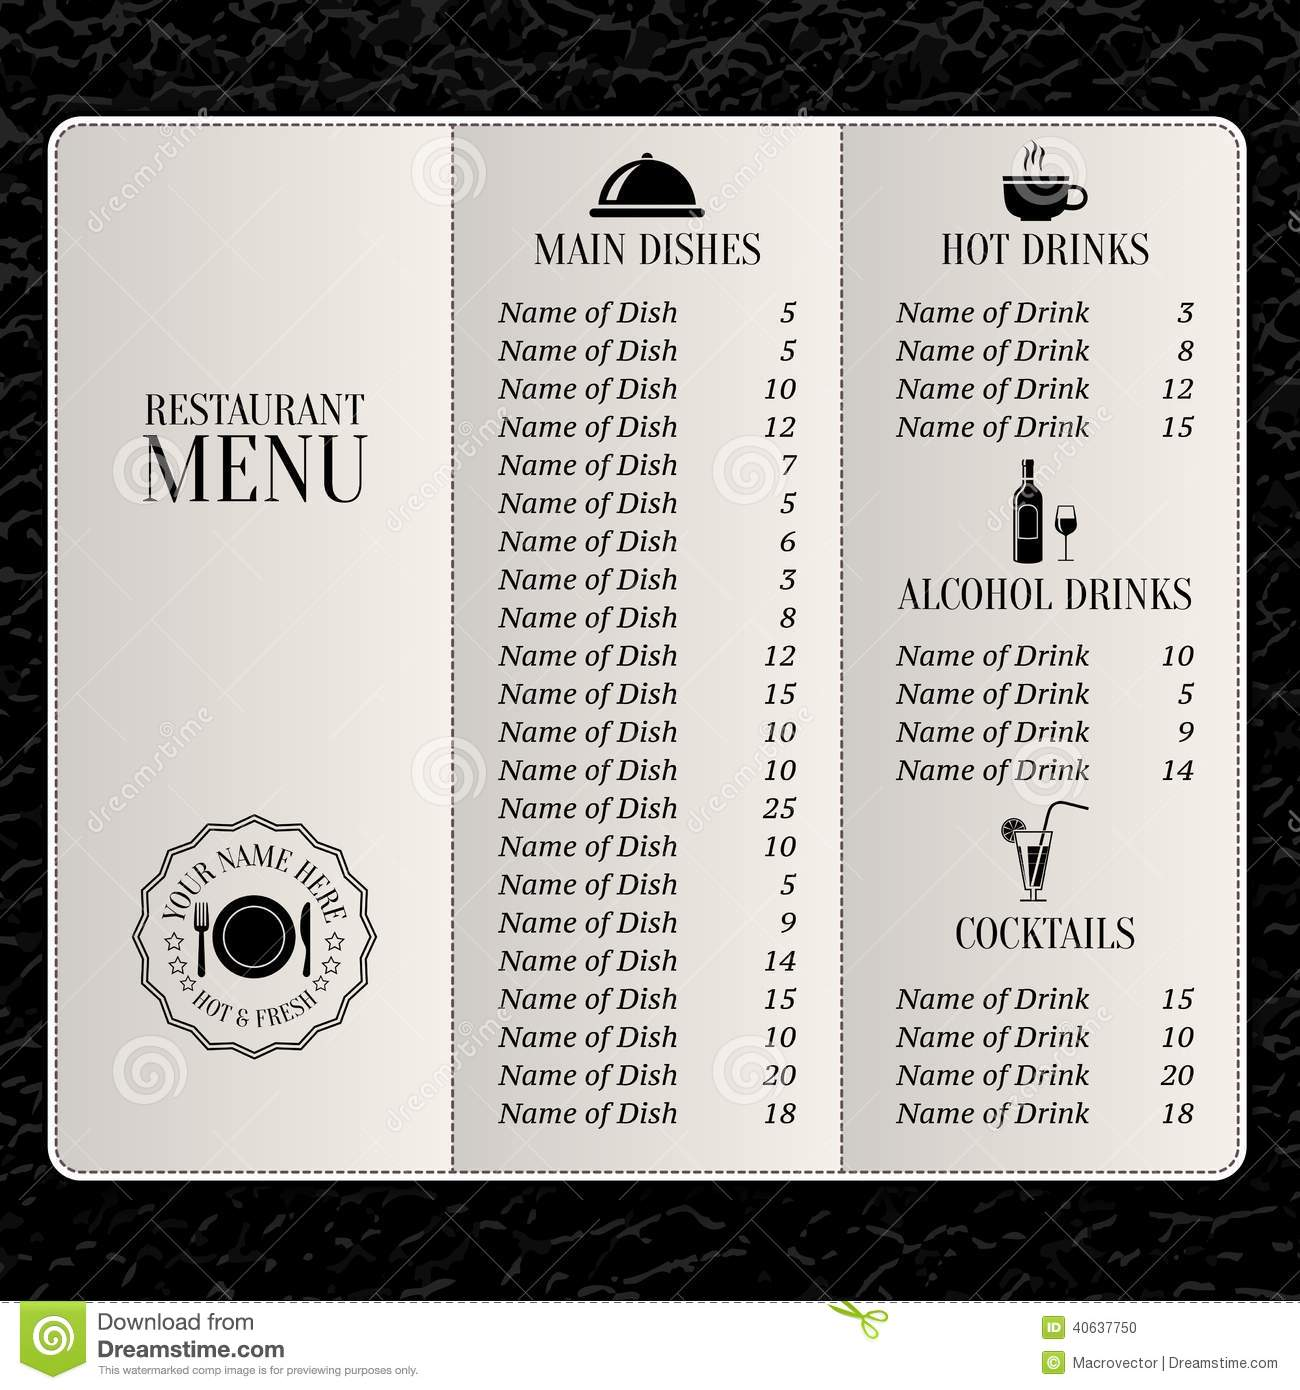 Drink Menu Templates Microsoft Word  Free Menu Templates Microsoft Word